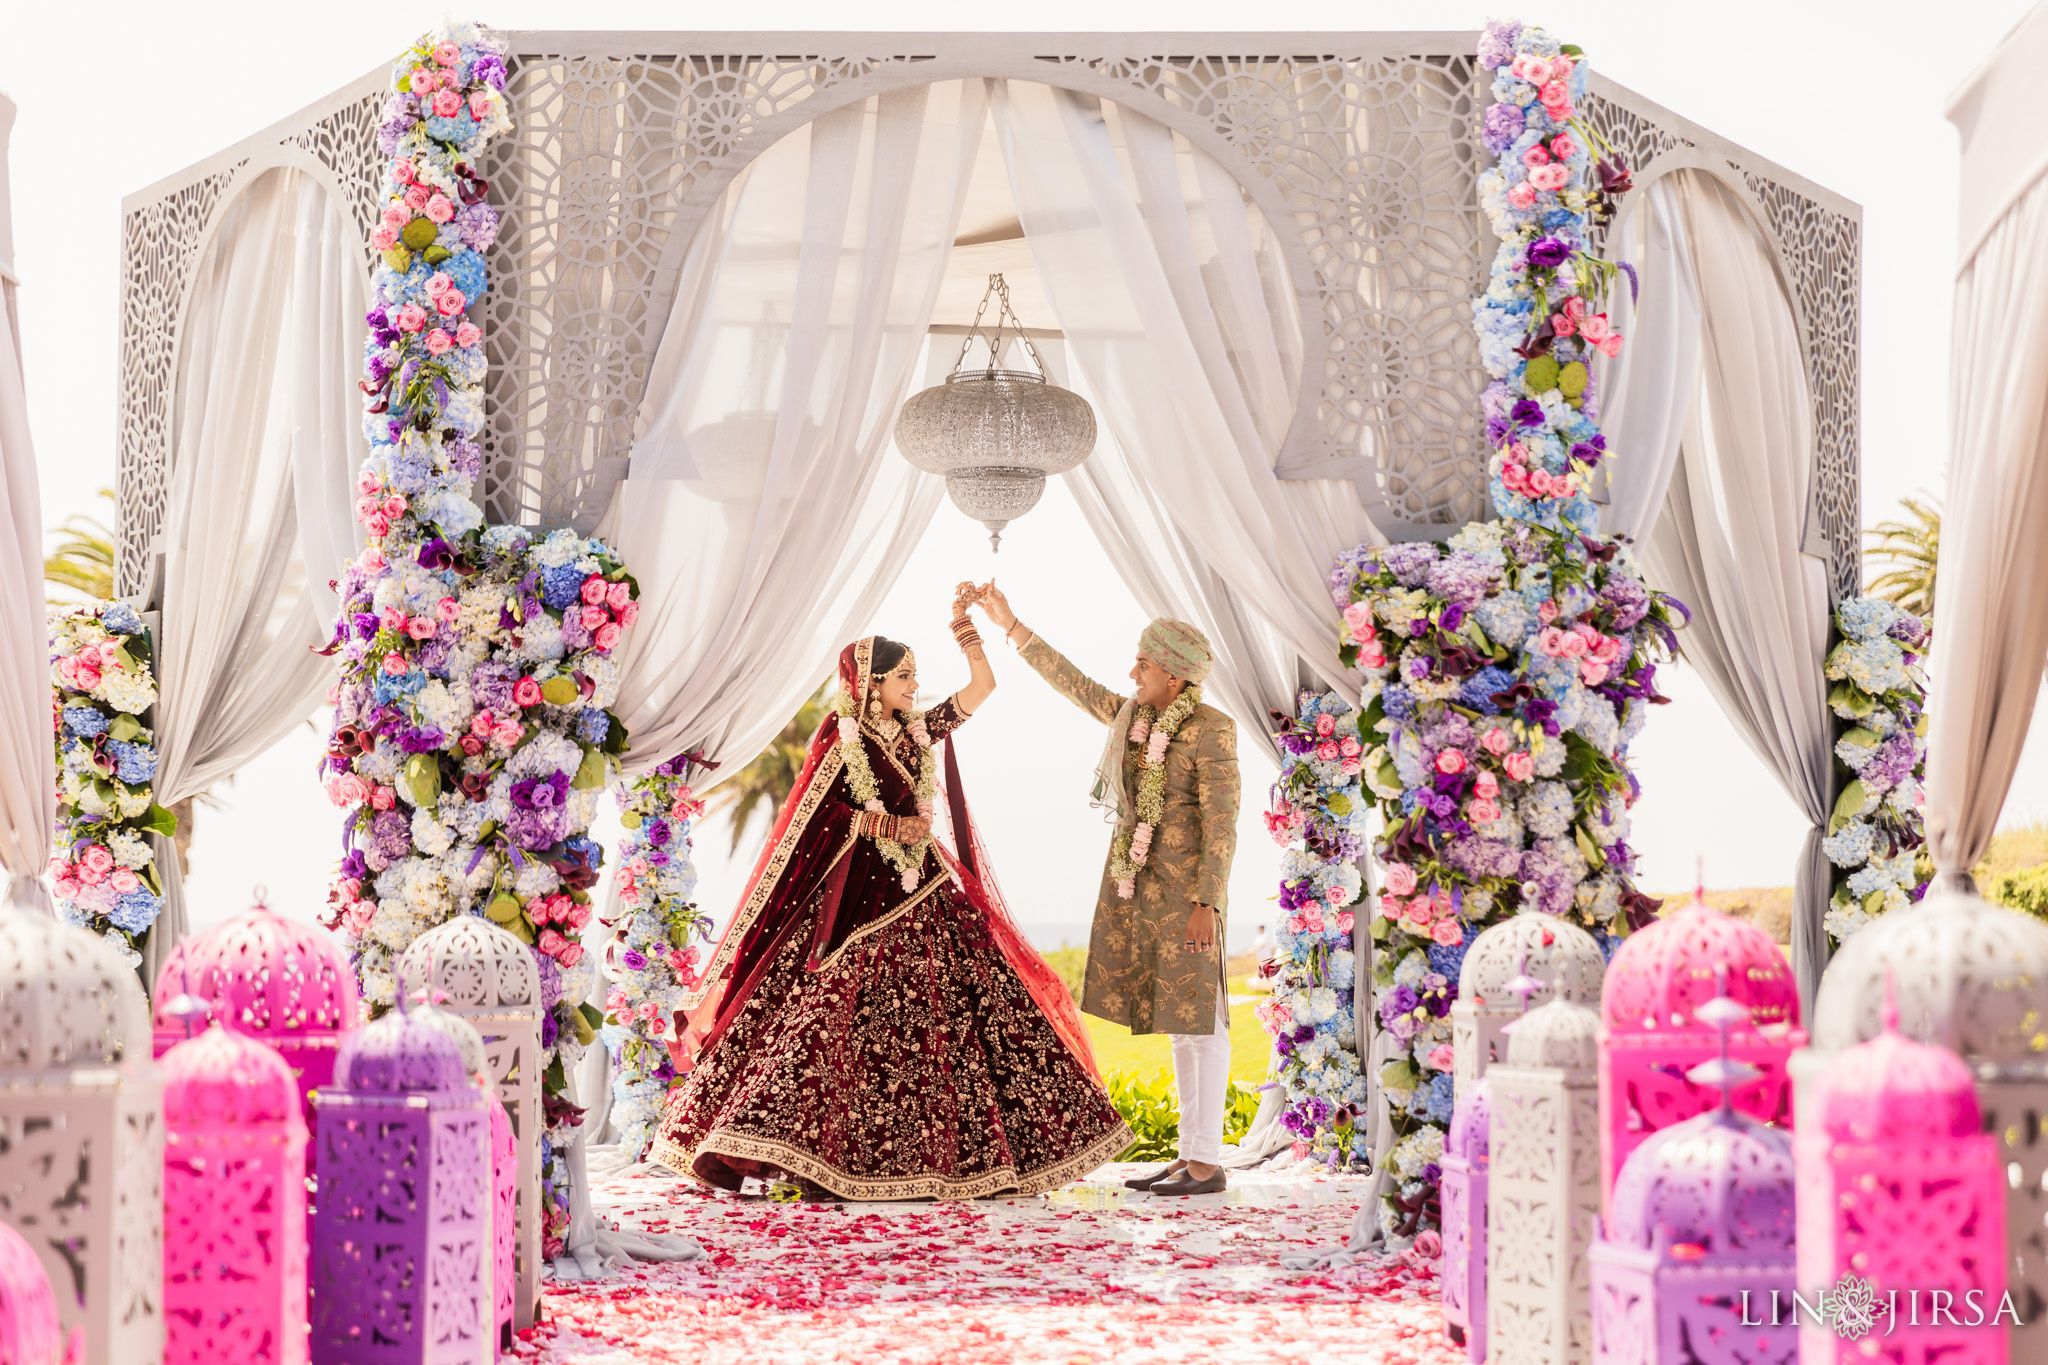 Top 12 Destinations with 35 Venues for a Budget Wedding in India (Under 25 Lakhs)